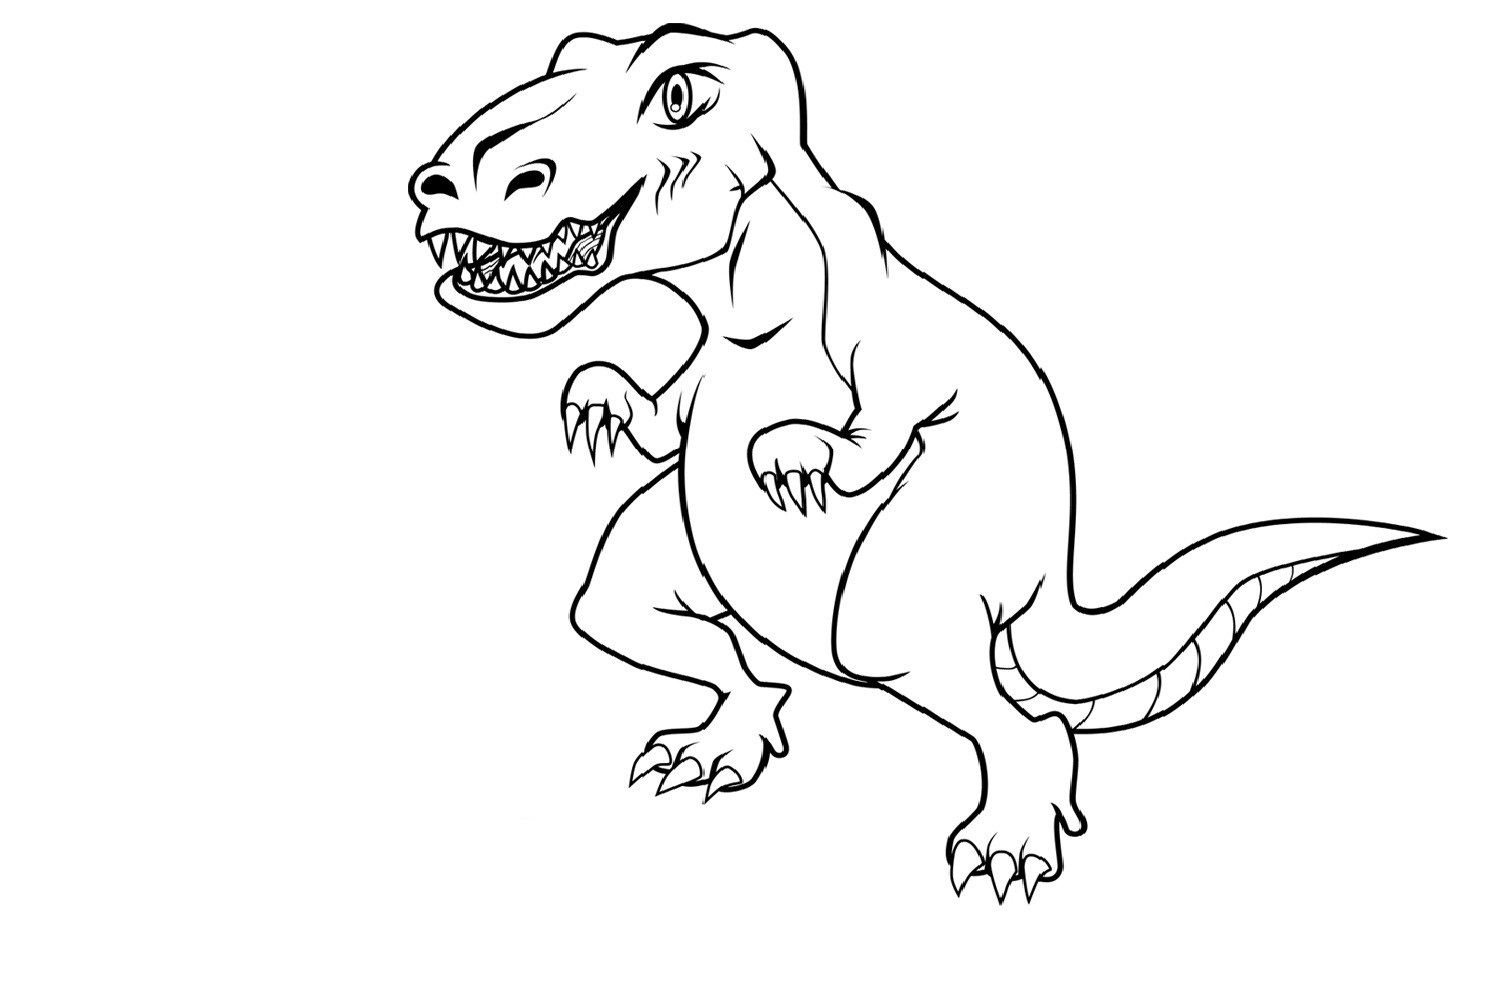 free printable dinosaur coloring pages - Childrens Free Colouring Pictures